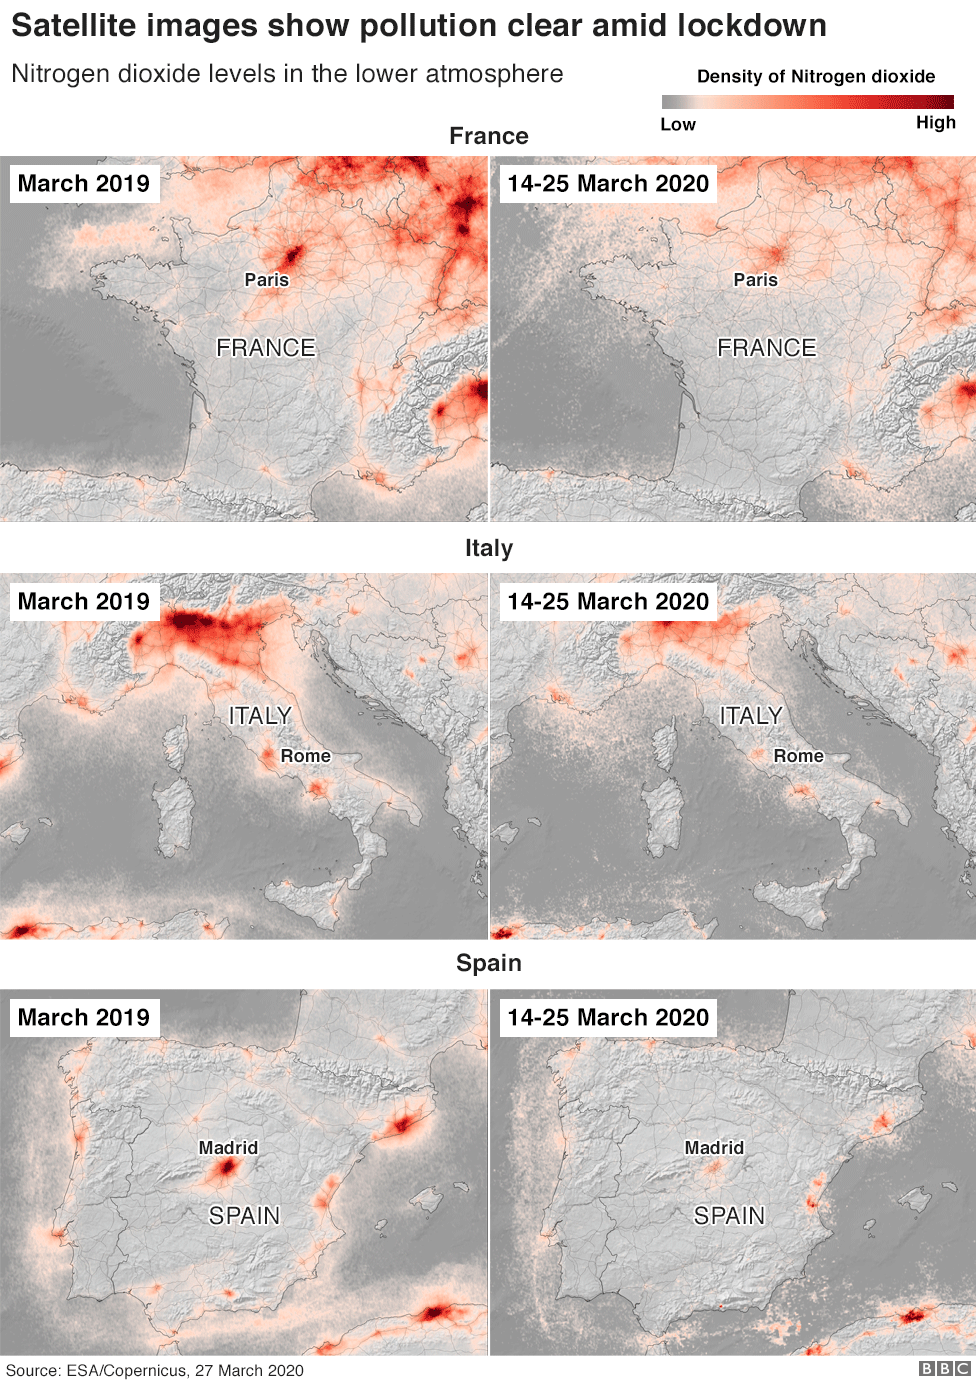 Satellite images showing level of pollutions in France, Spain and Italy